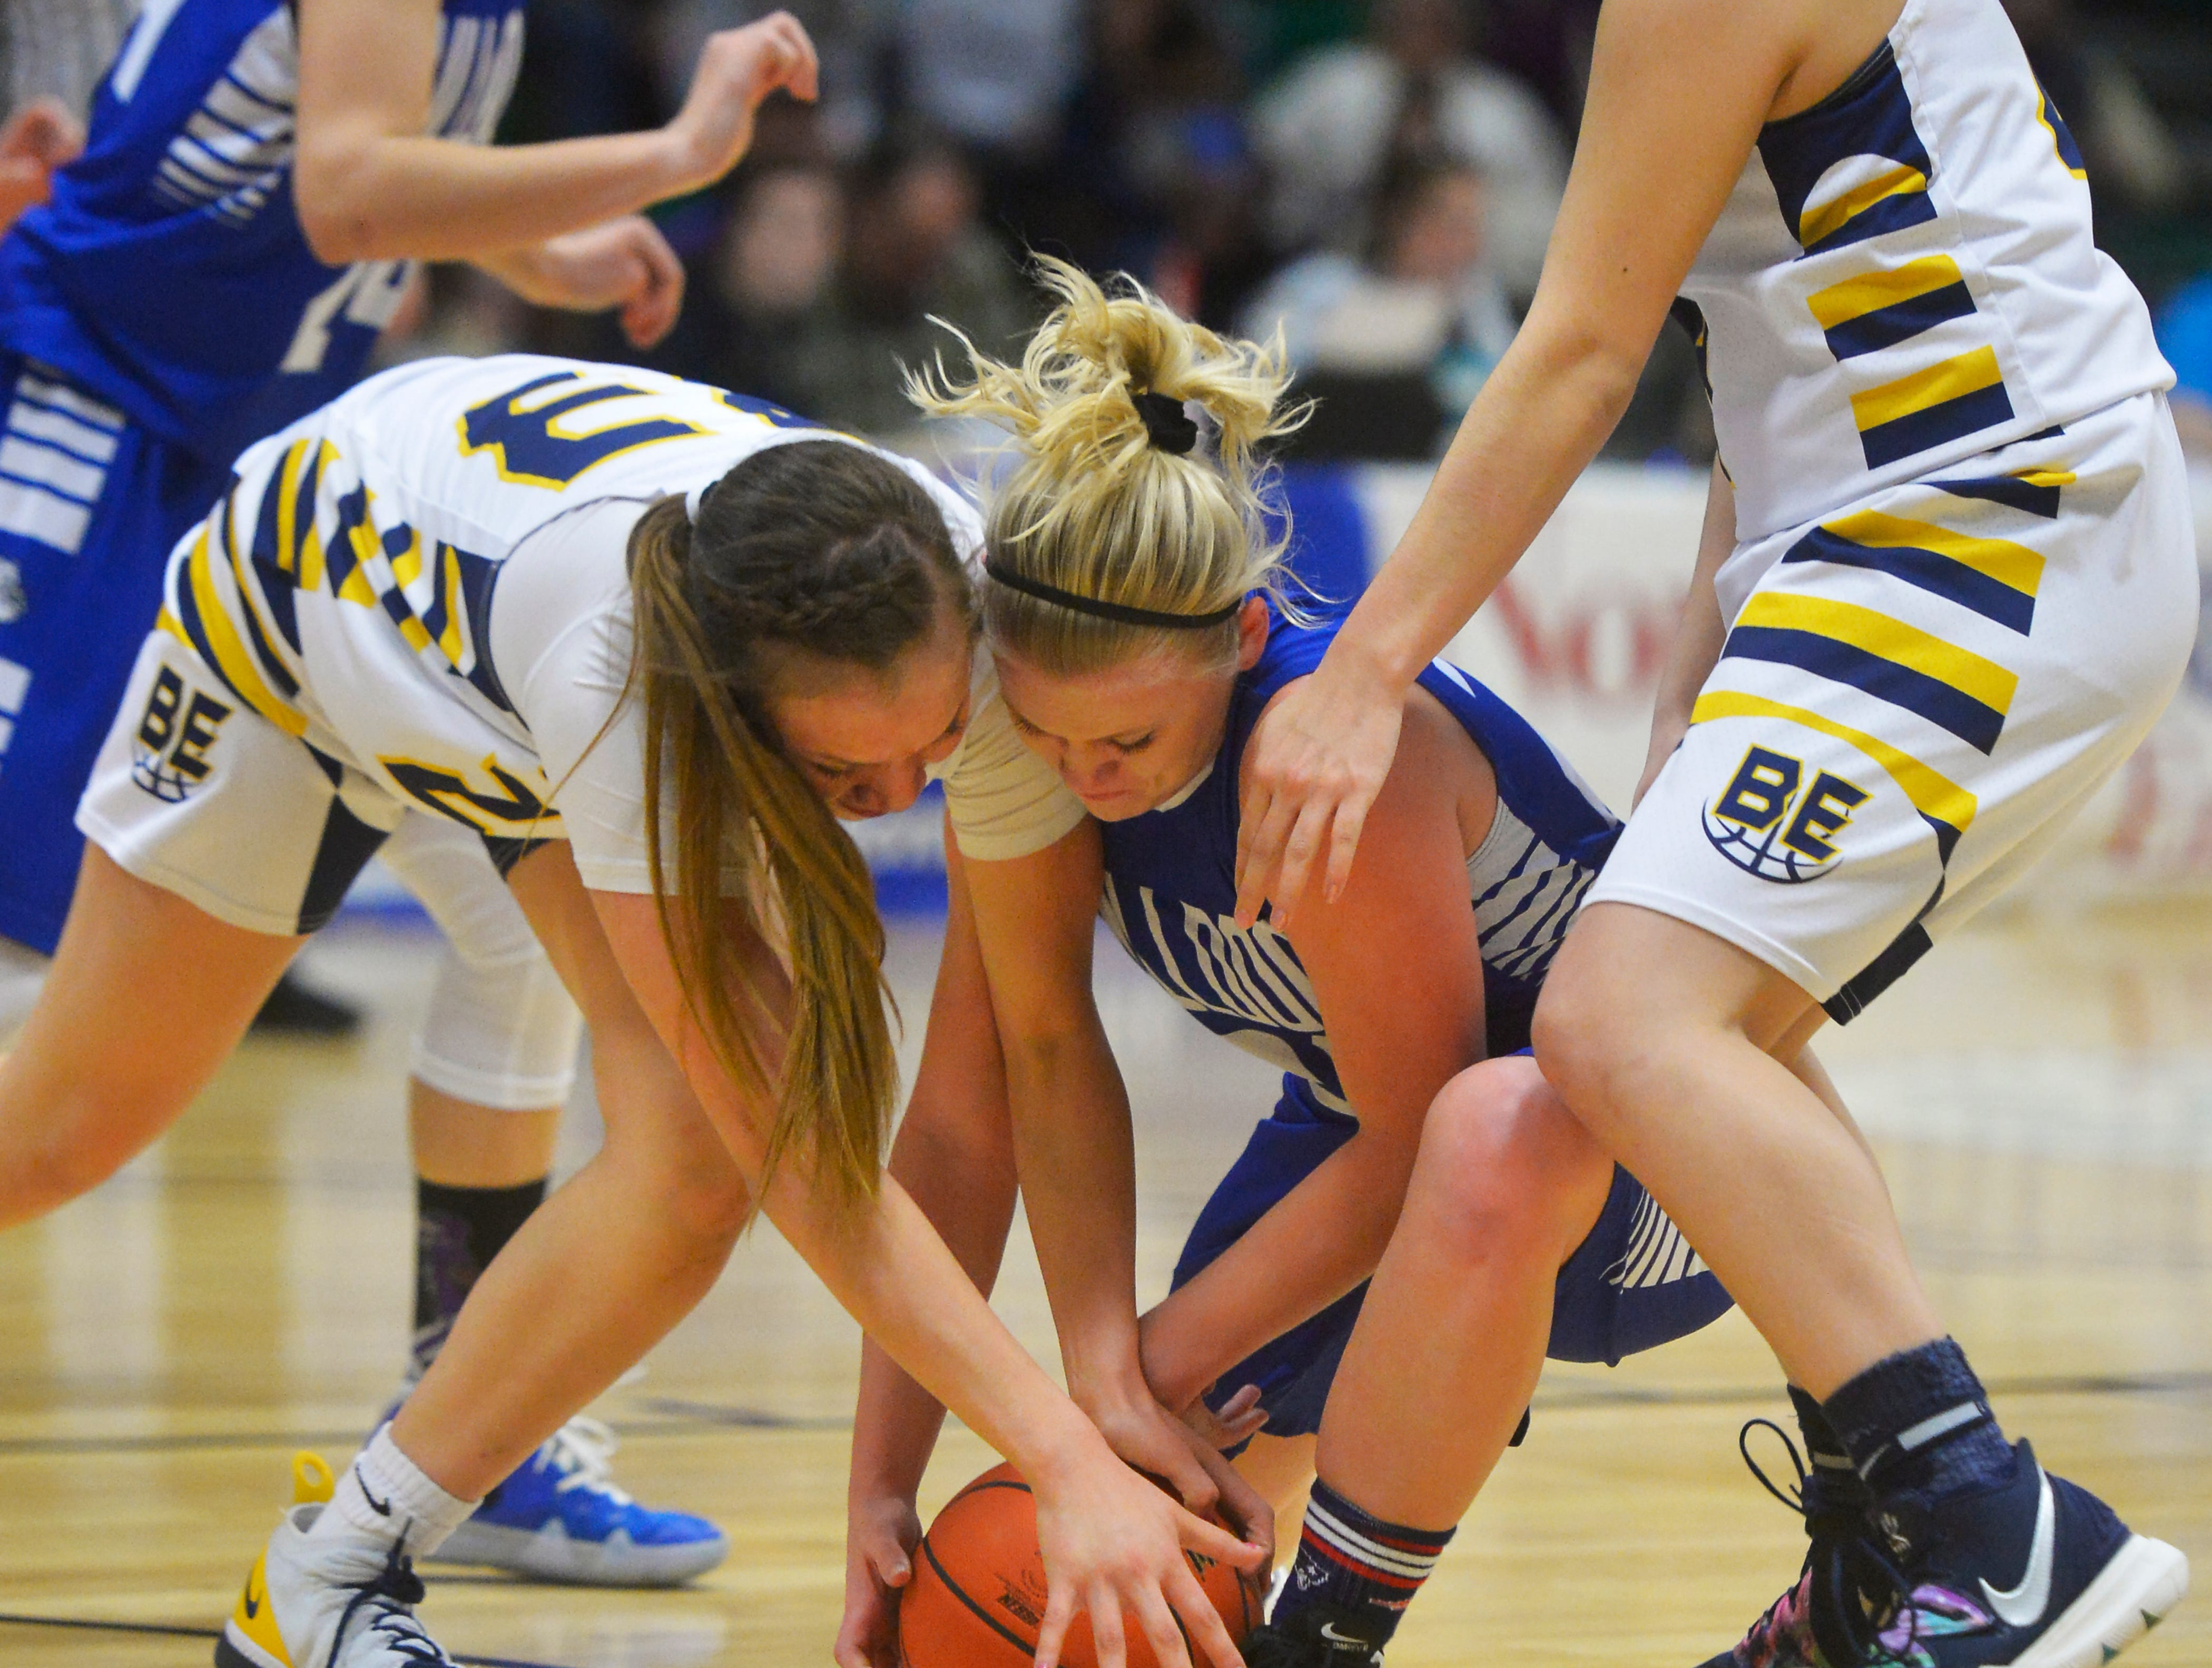 Box Elder's Kyla Momberg, lef, and Carter County's Kari Kittelmann go to the floor for a loose ball during the Girls State C Basketball Tournament on Thursday in the Four Seasons Arena.